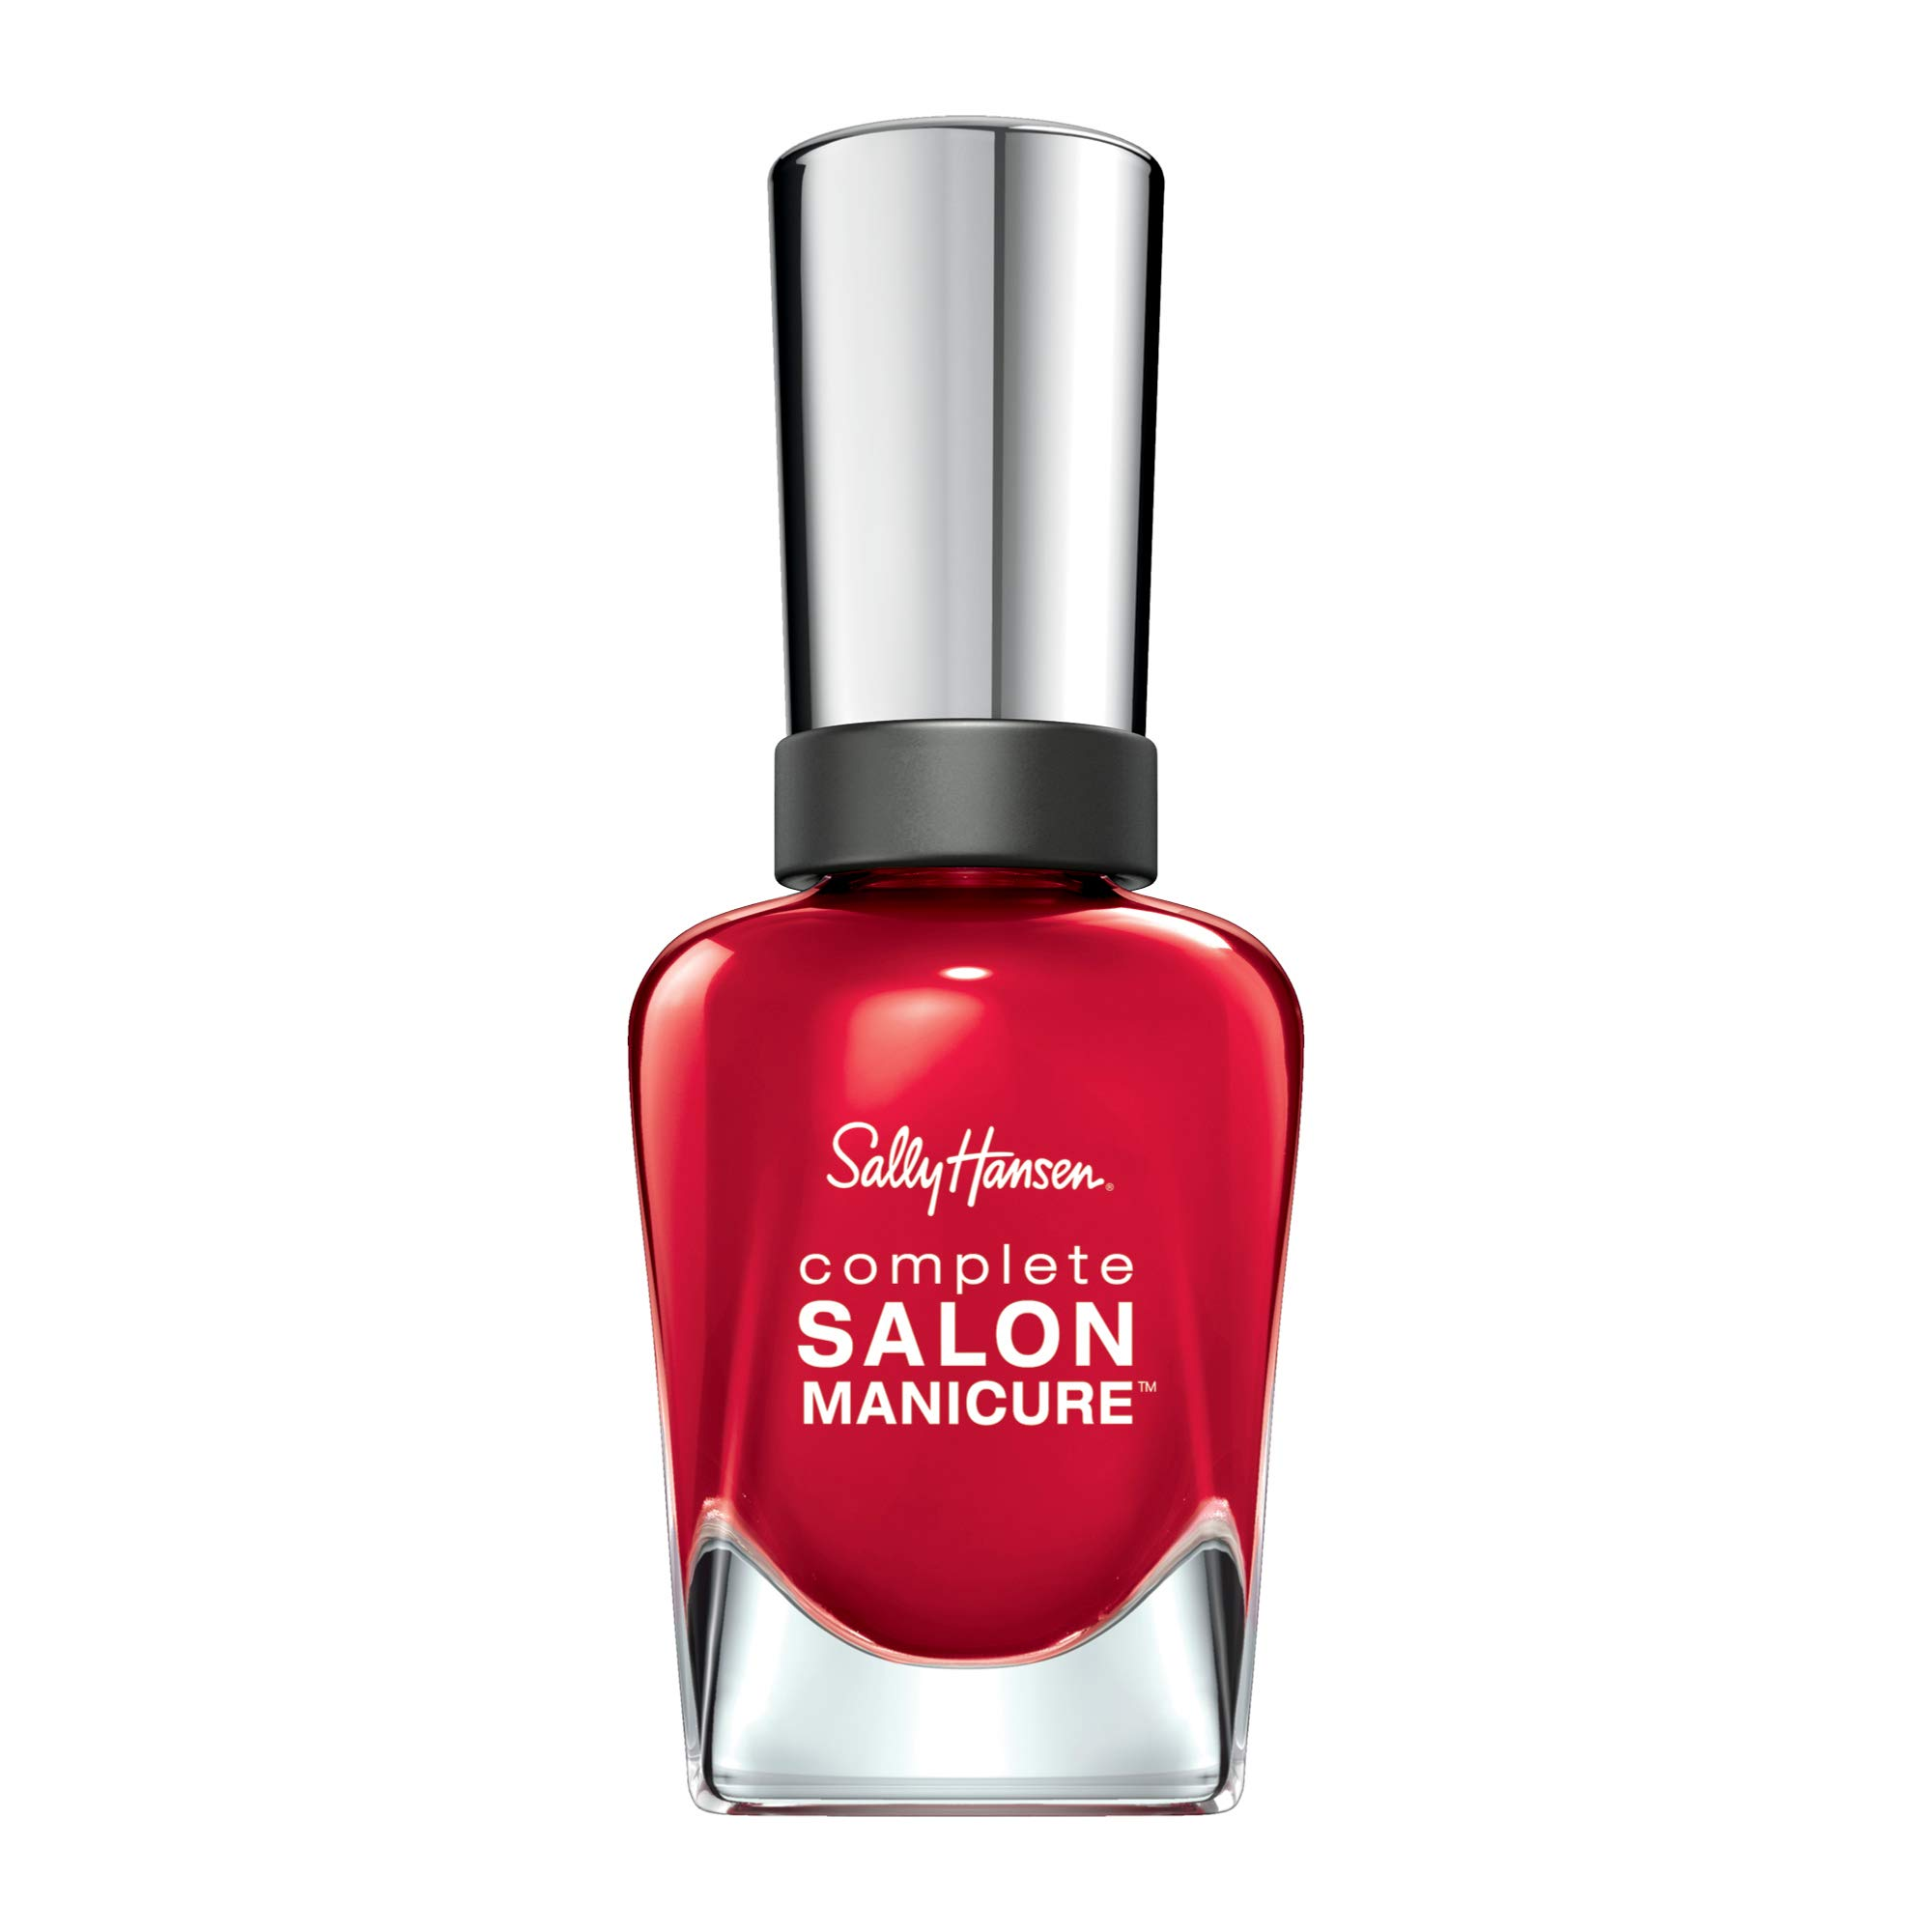 Sally Hansen - Complete Salon Manicure Nail Color, Reds